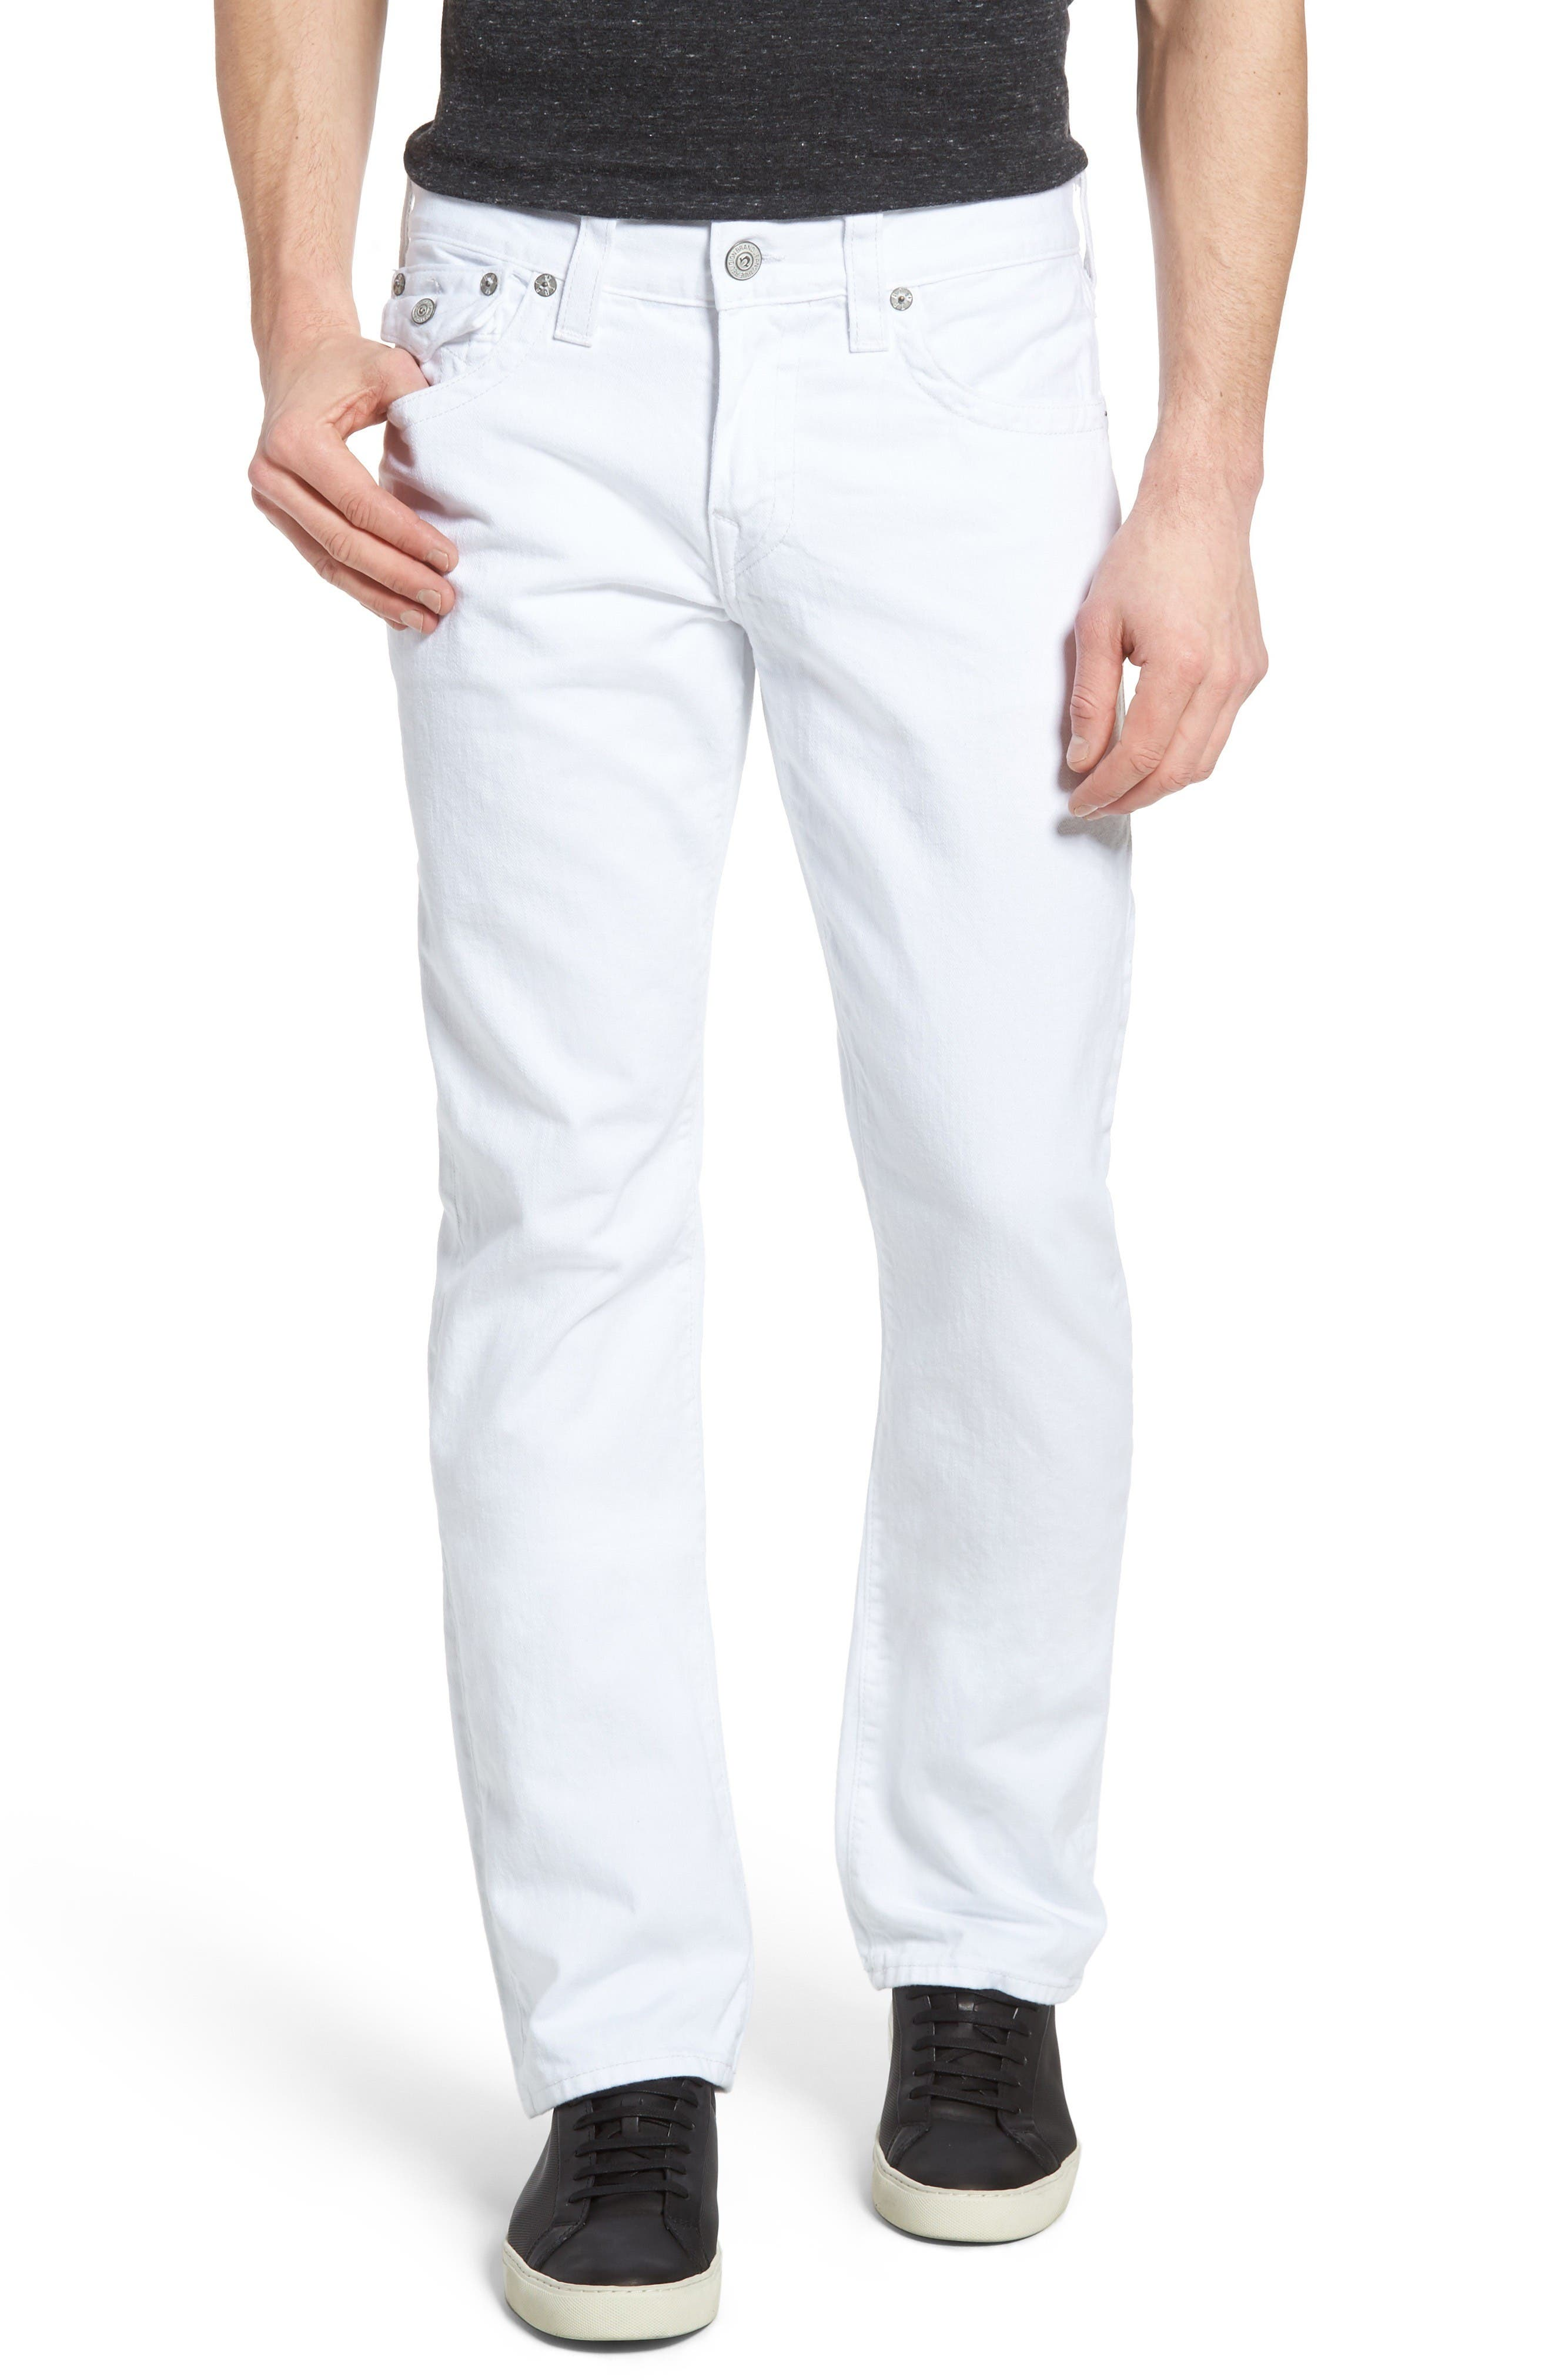 Main Image - True Religion Brand Jeans Ricky Relaxed Fit Jeans (Optic White) (Regular & Big)